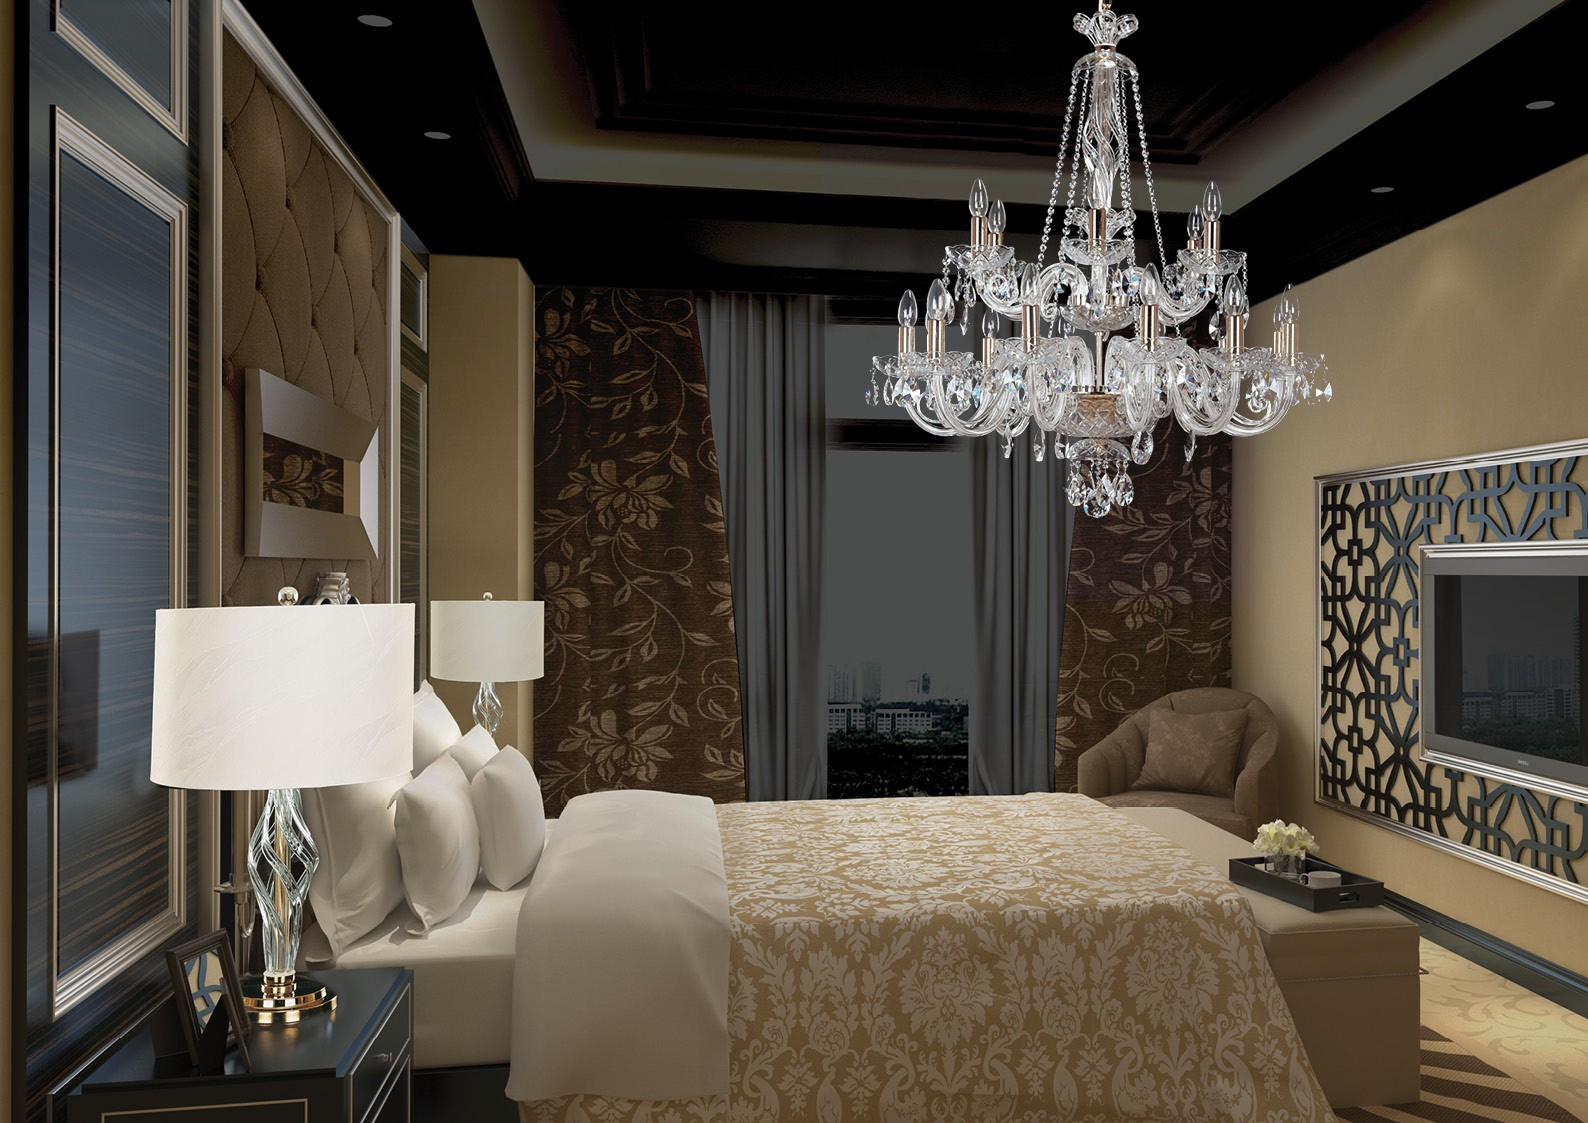 Bedroom Chandelier EL4151802